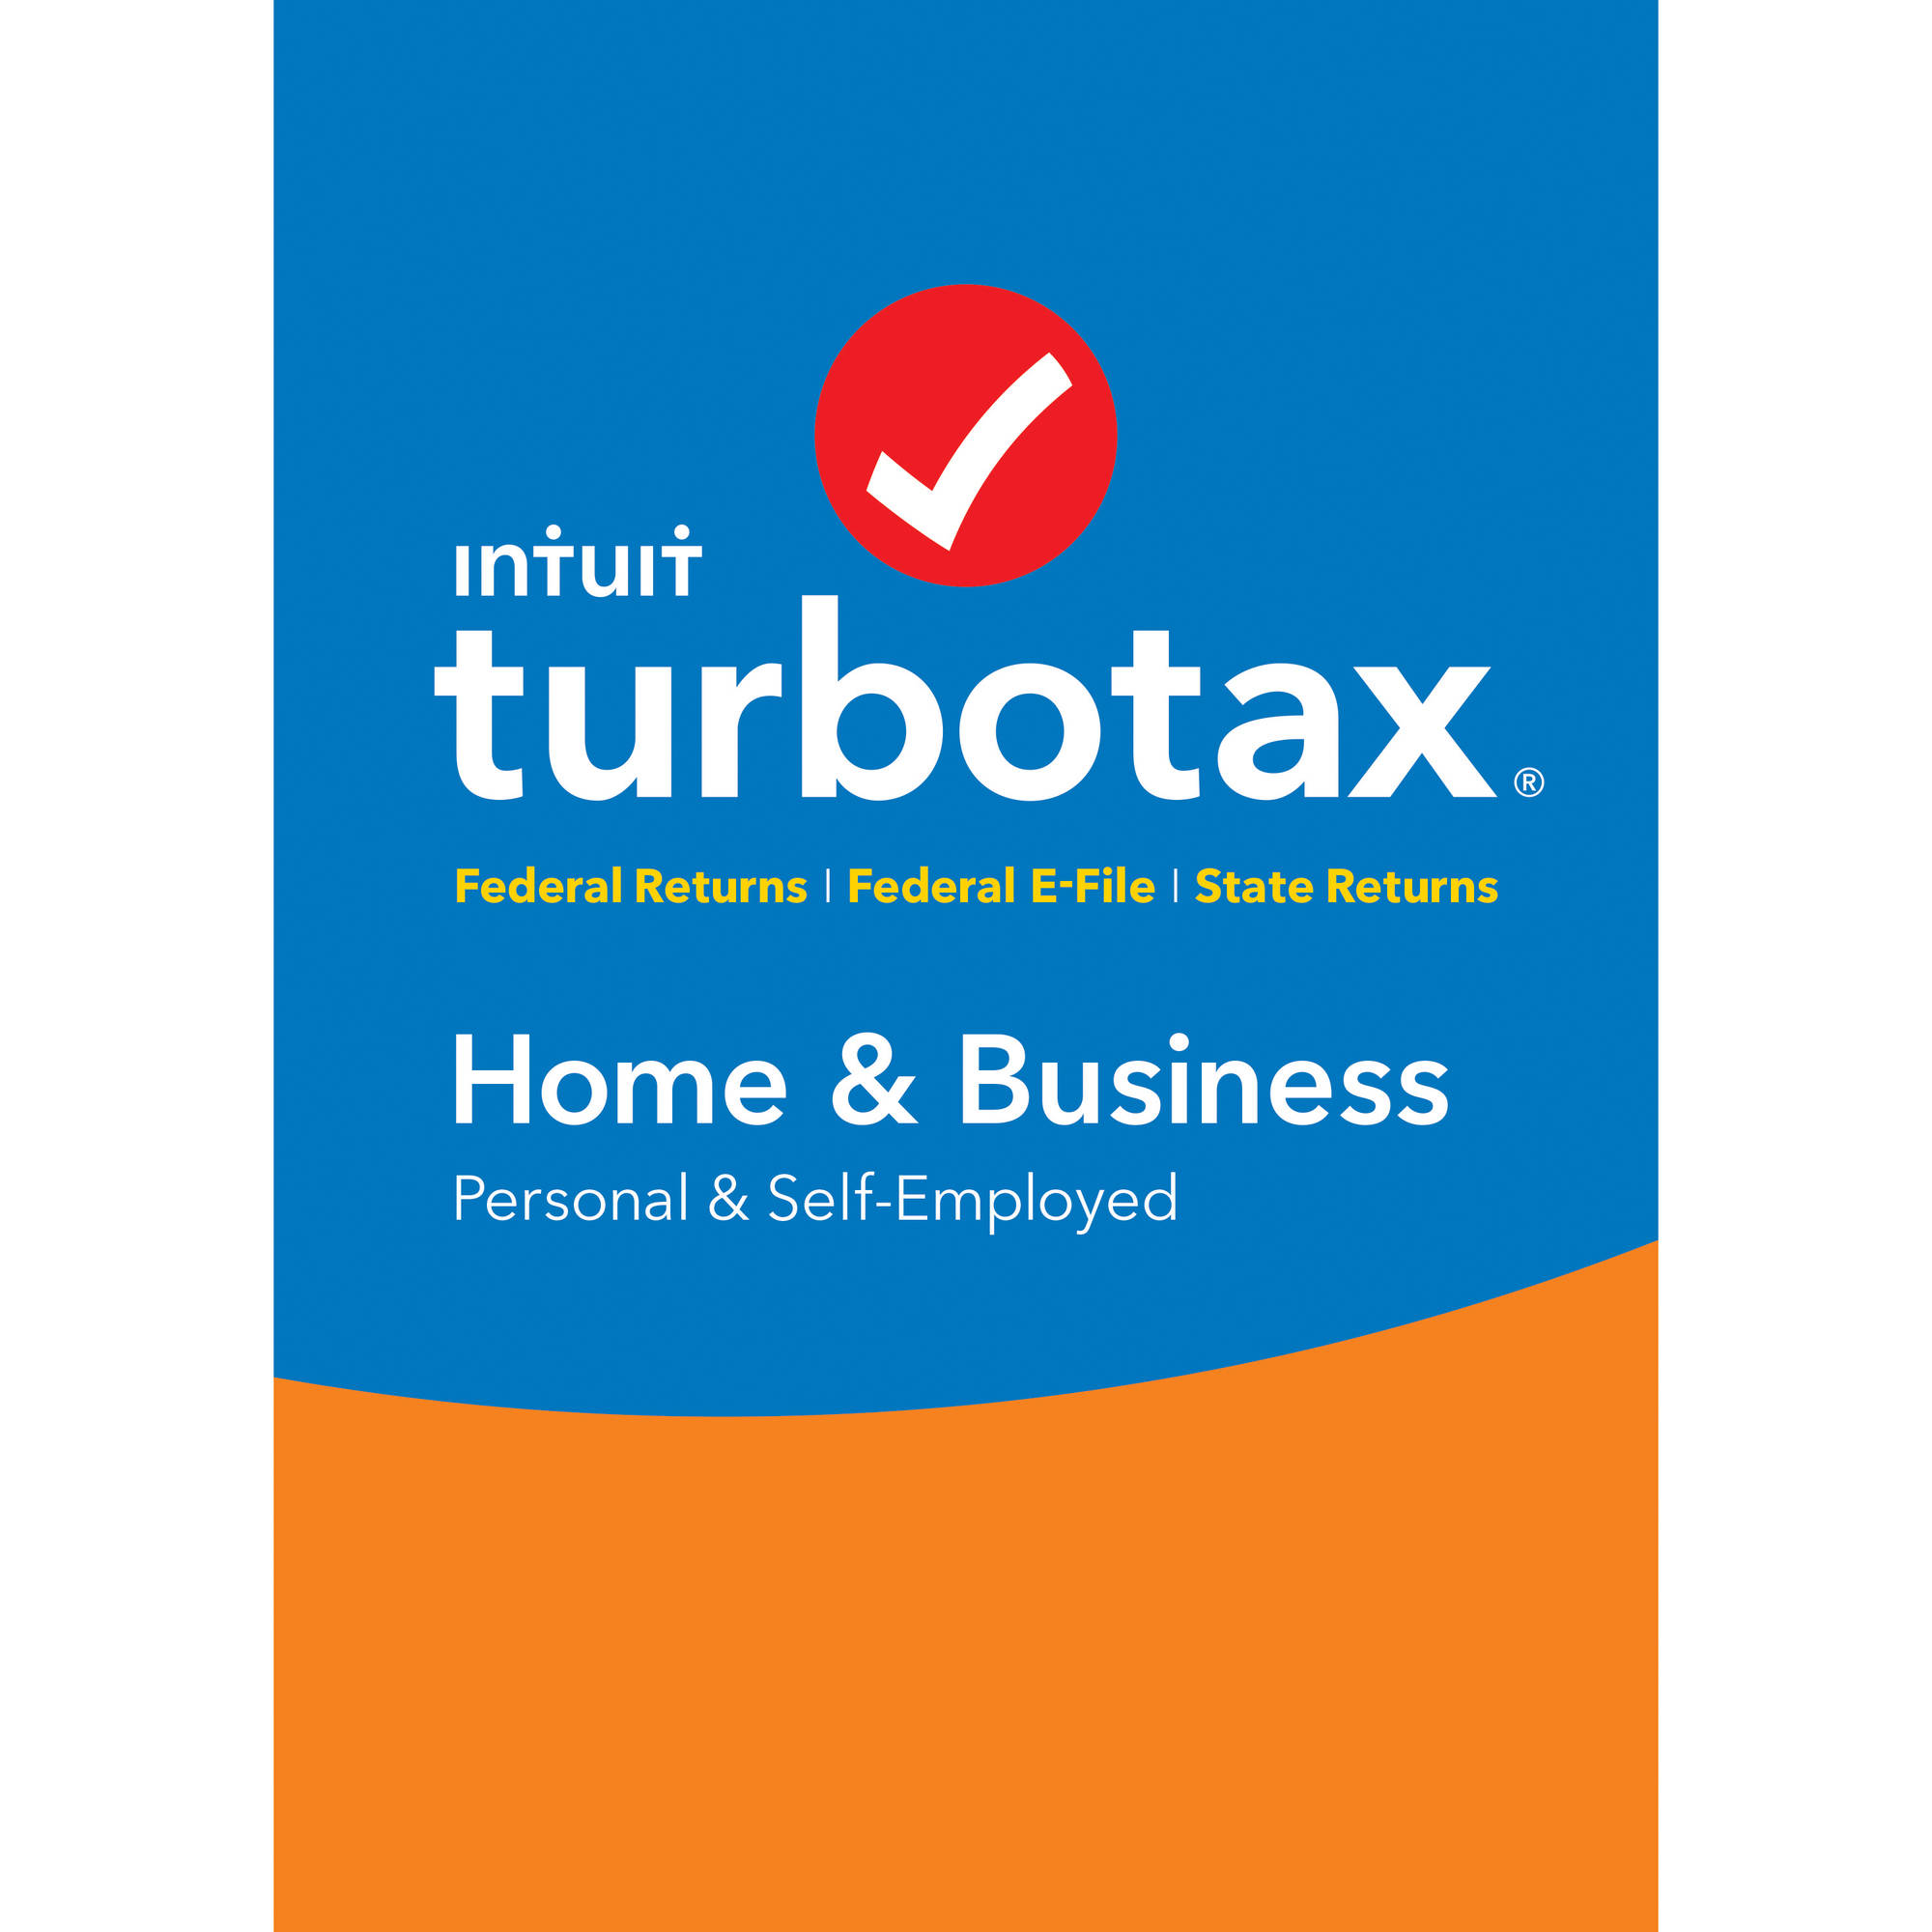 TurboTax Home and Business (Federal and State) for Mac, Tax Year 2016 (Email Delivery)